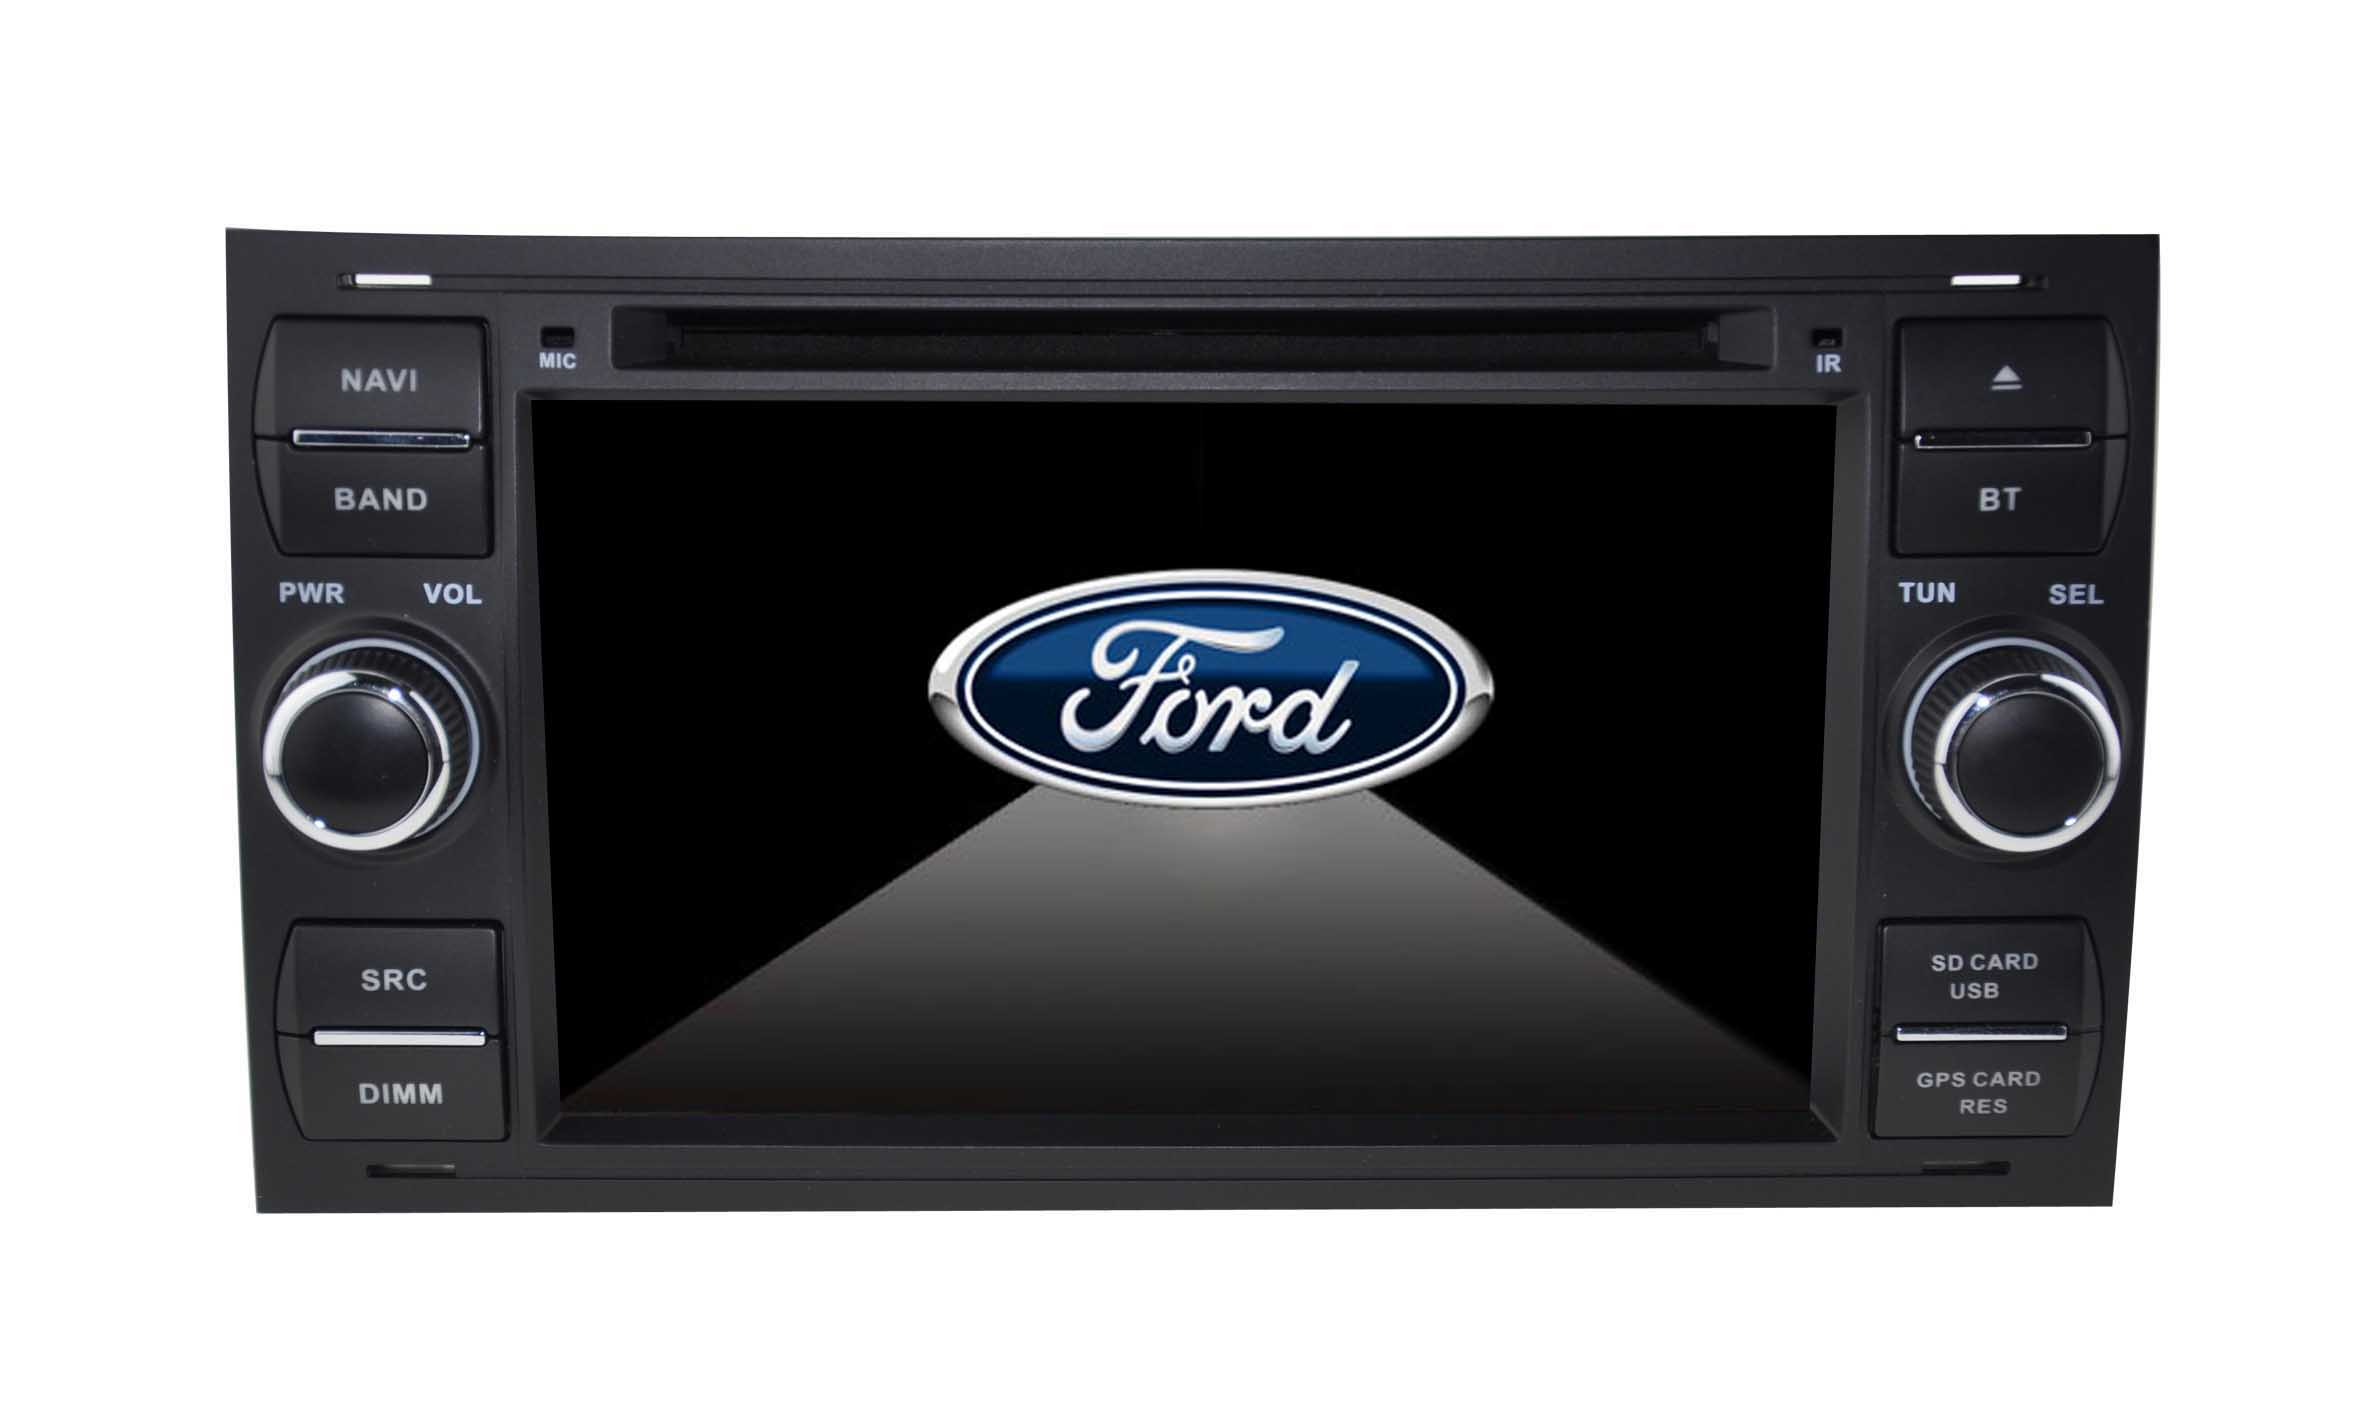 Autoradio GPS WIFI DVD CD Bluetooth USB SD pour Ford Kuga Focus C-Max Fiesta Fusion Galaxy Transit (Windows processeur 1GHZ)